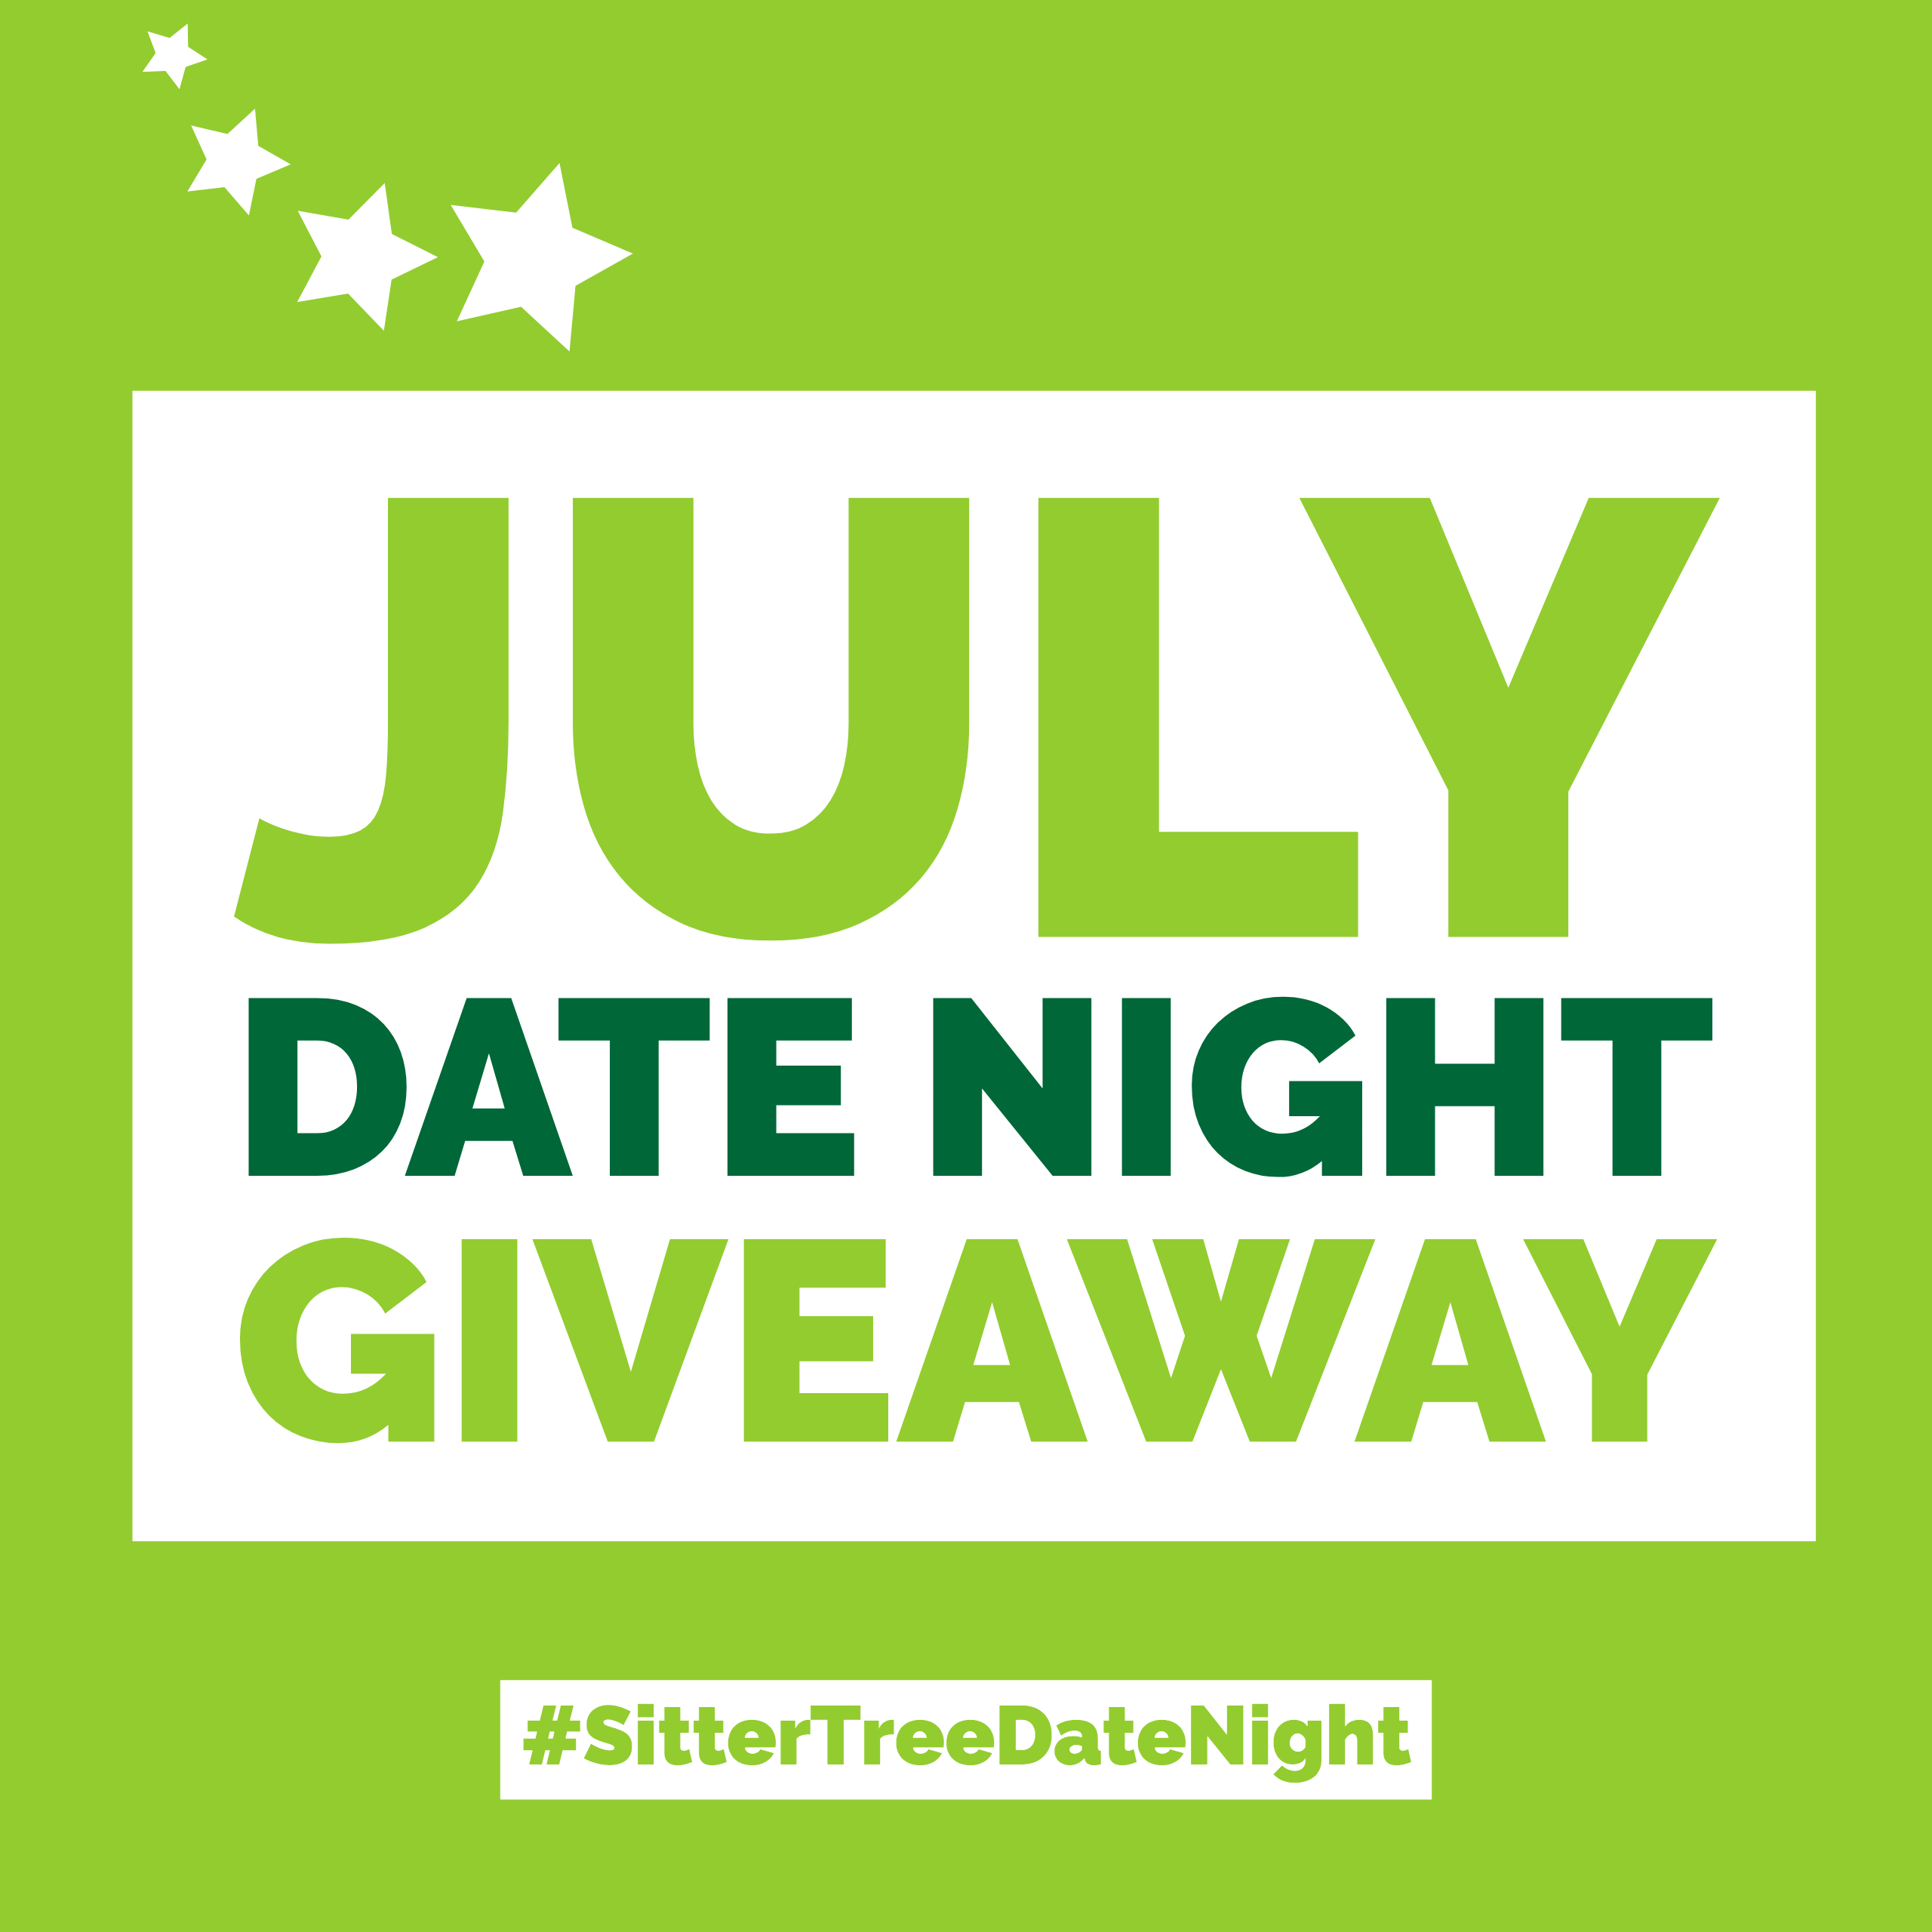 July Date Night Giveaway: FREE Babysitting + $100 Gift card